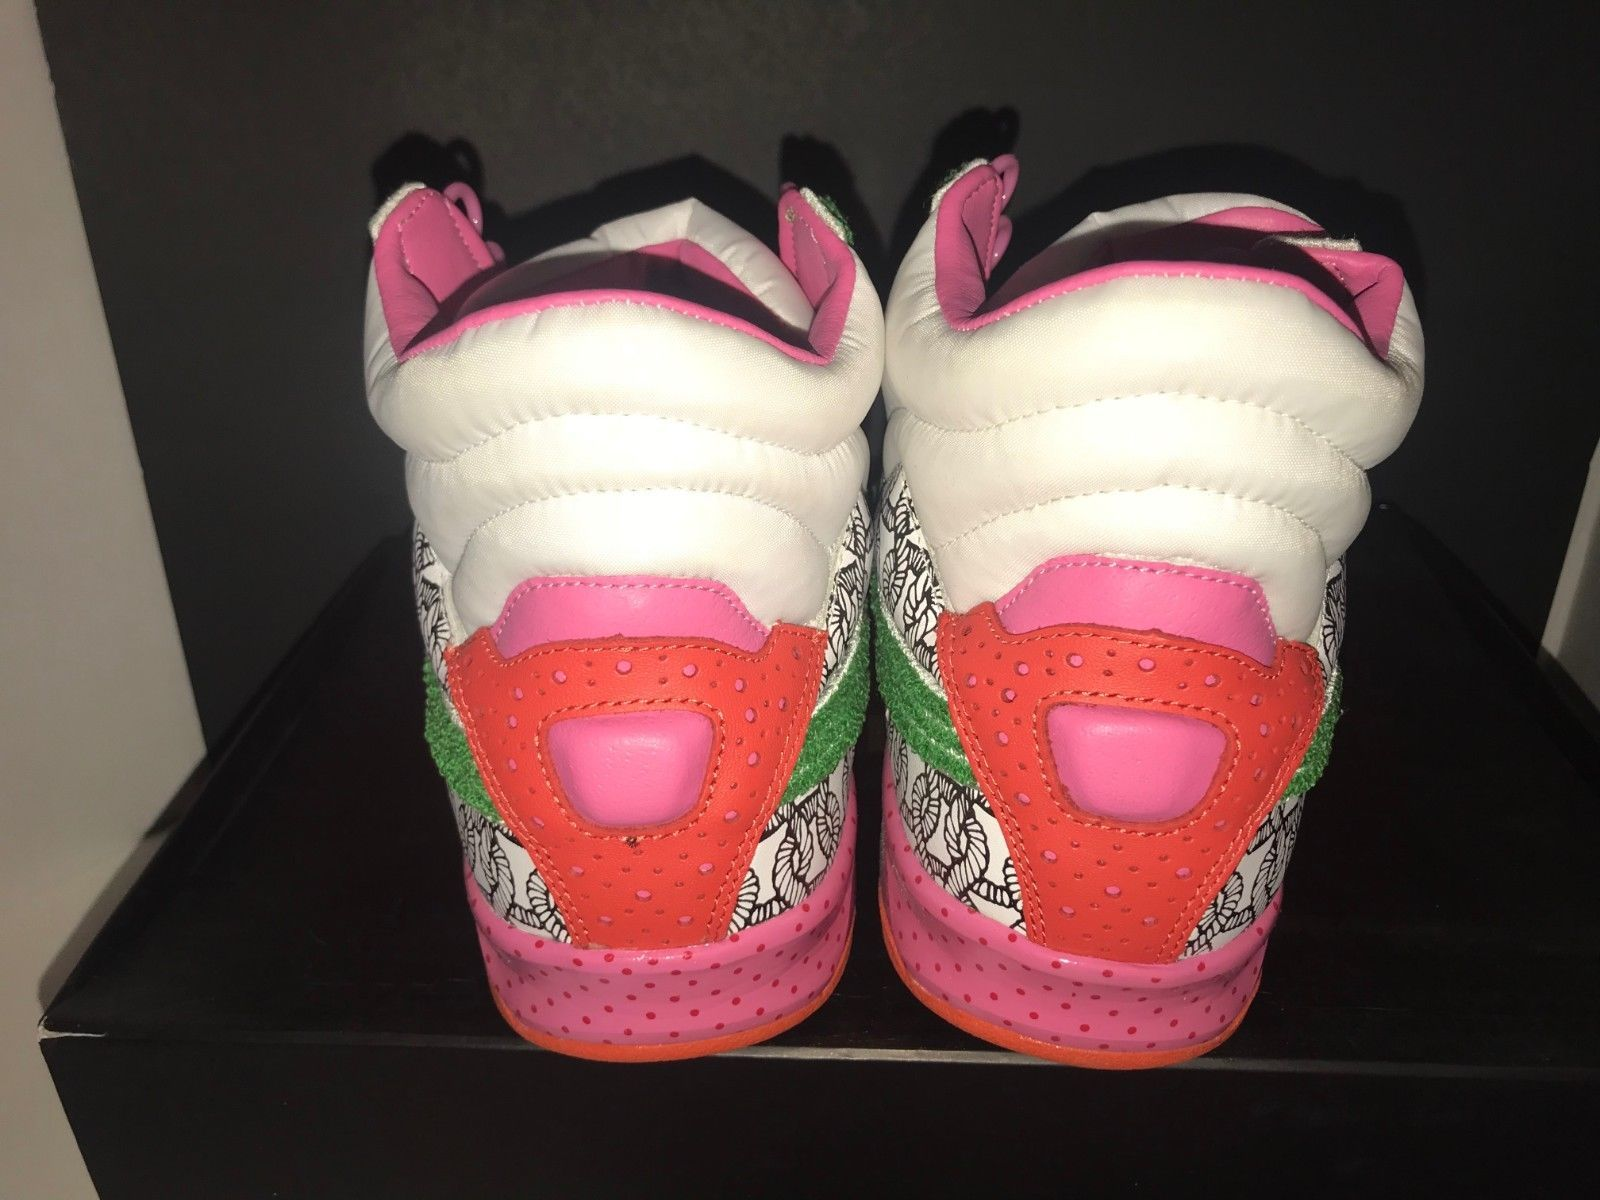 Puma x Sibling LTD.Challenge White Pink and 50 similar items